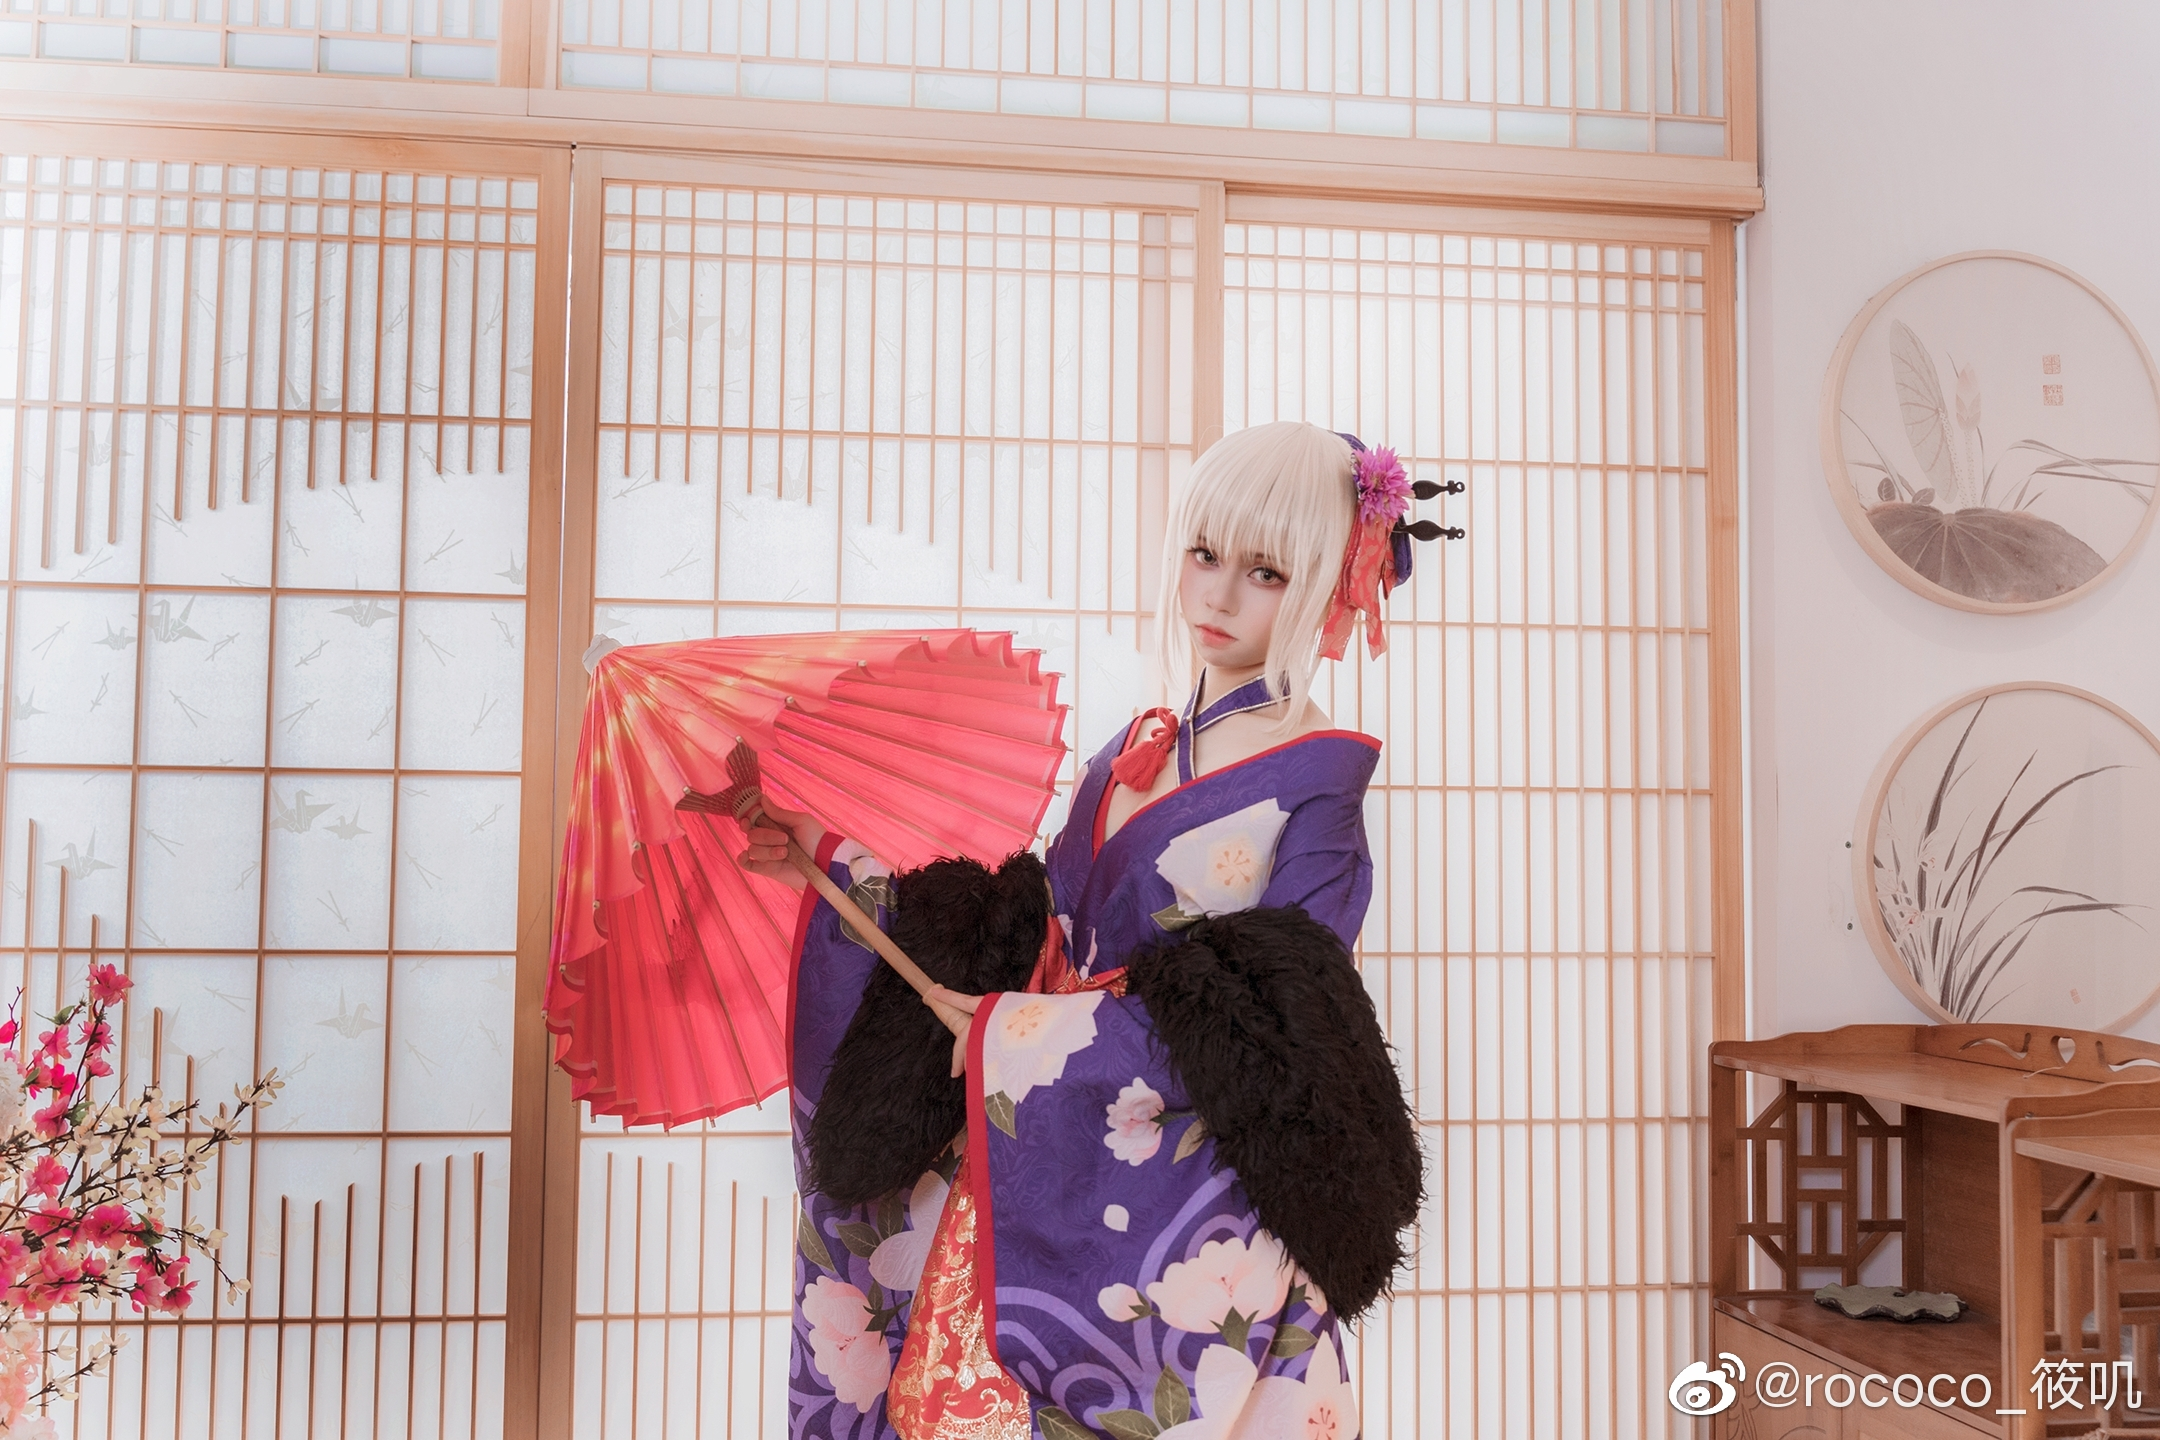 Fate/Grand Order 黑saber 花魁姿 Cosplay - COSPLAY -